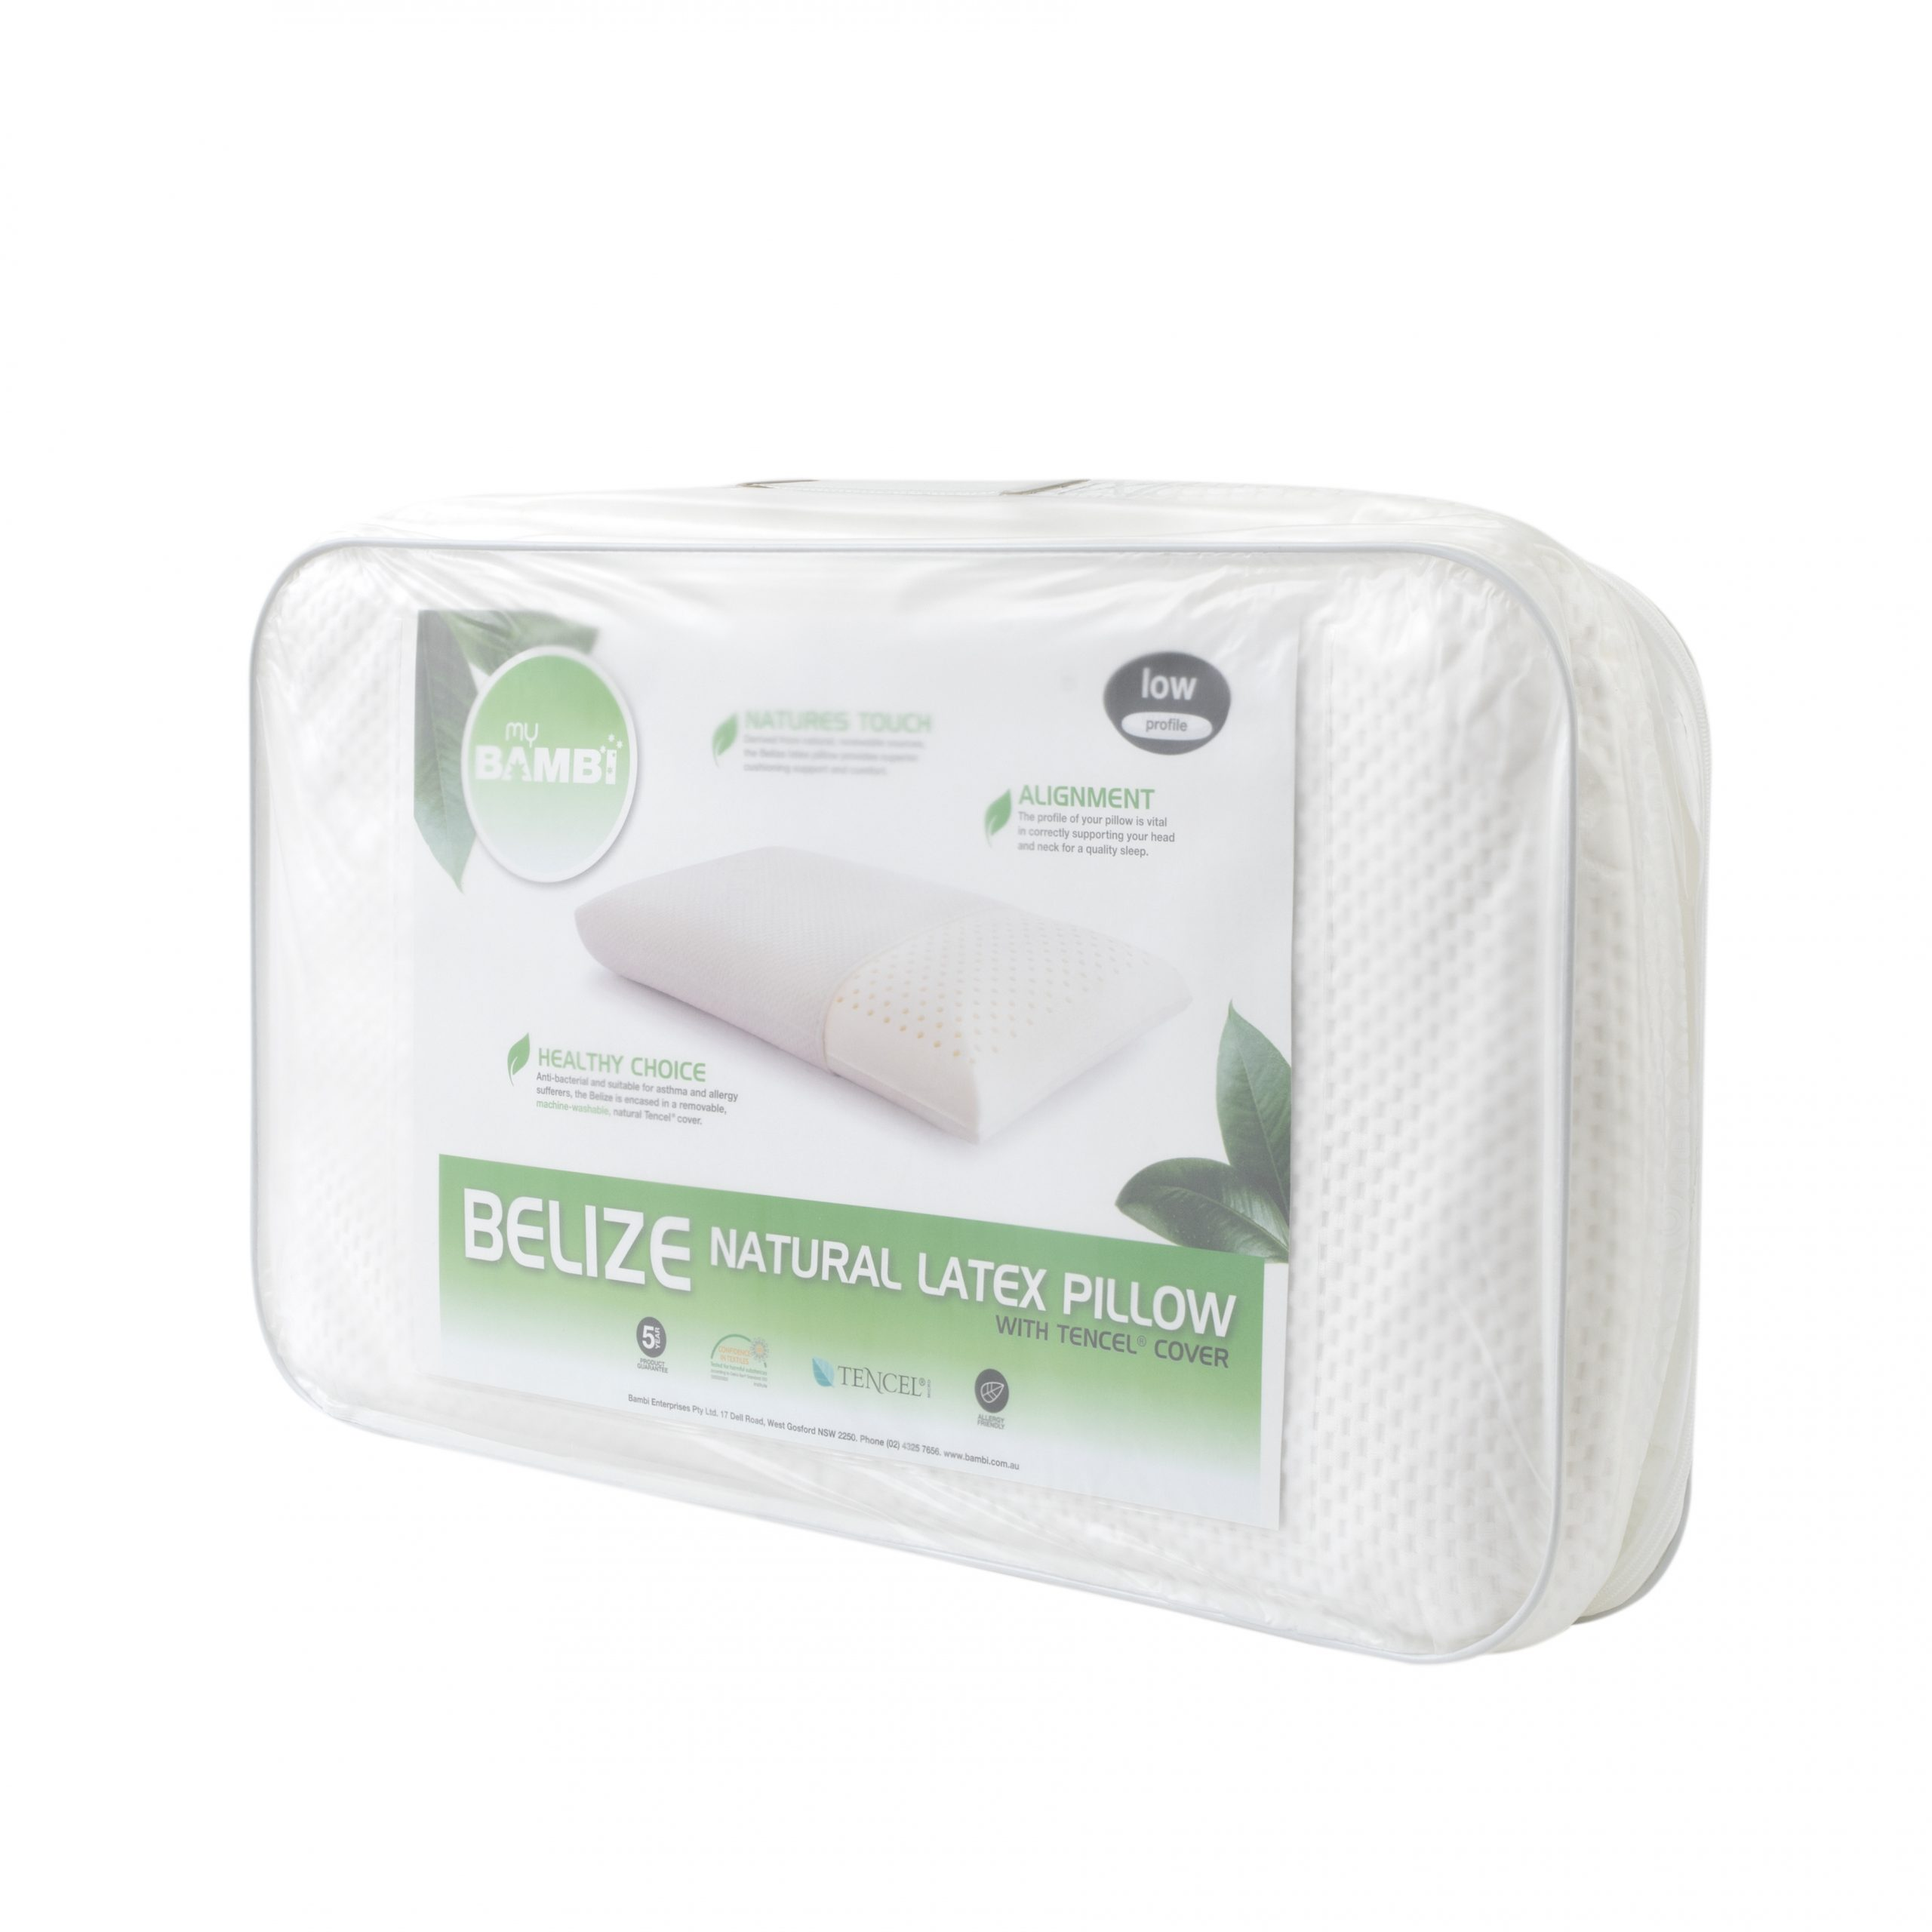 Belize Natural Latex Low Profile Pillow with Tencel Cover